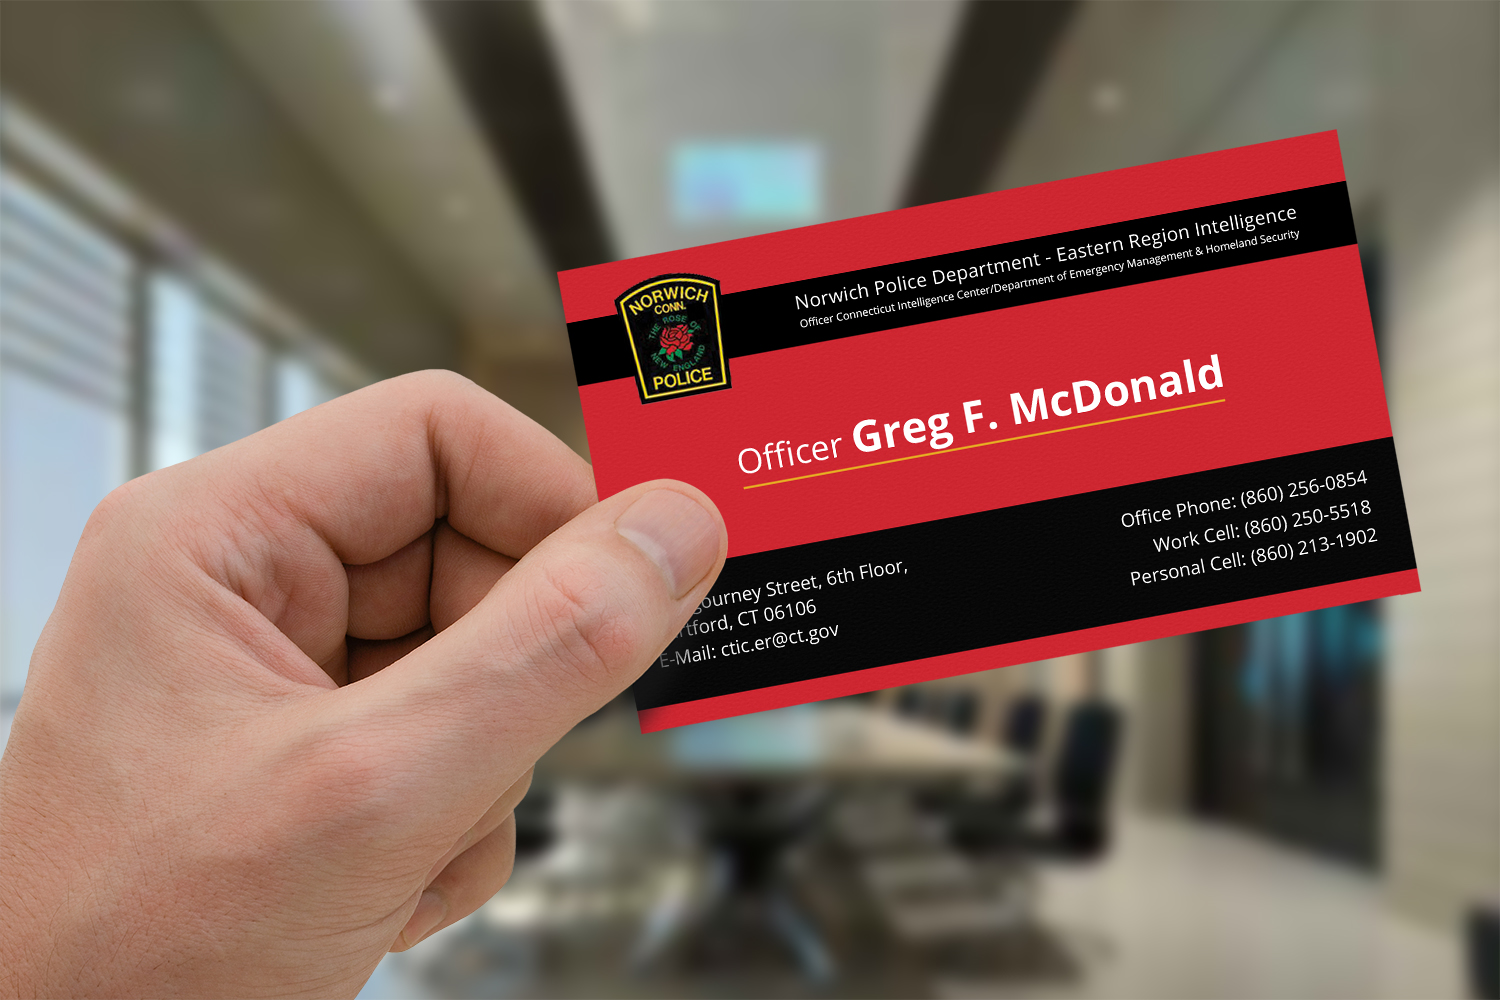 Business Card Design For Greg Mcdonald By Andym 6121792